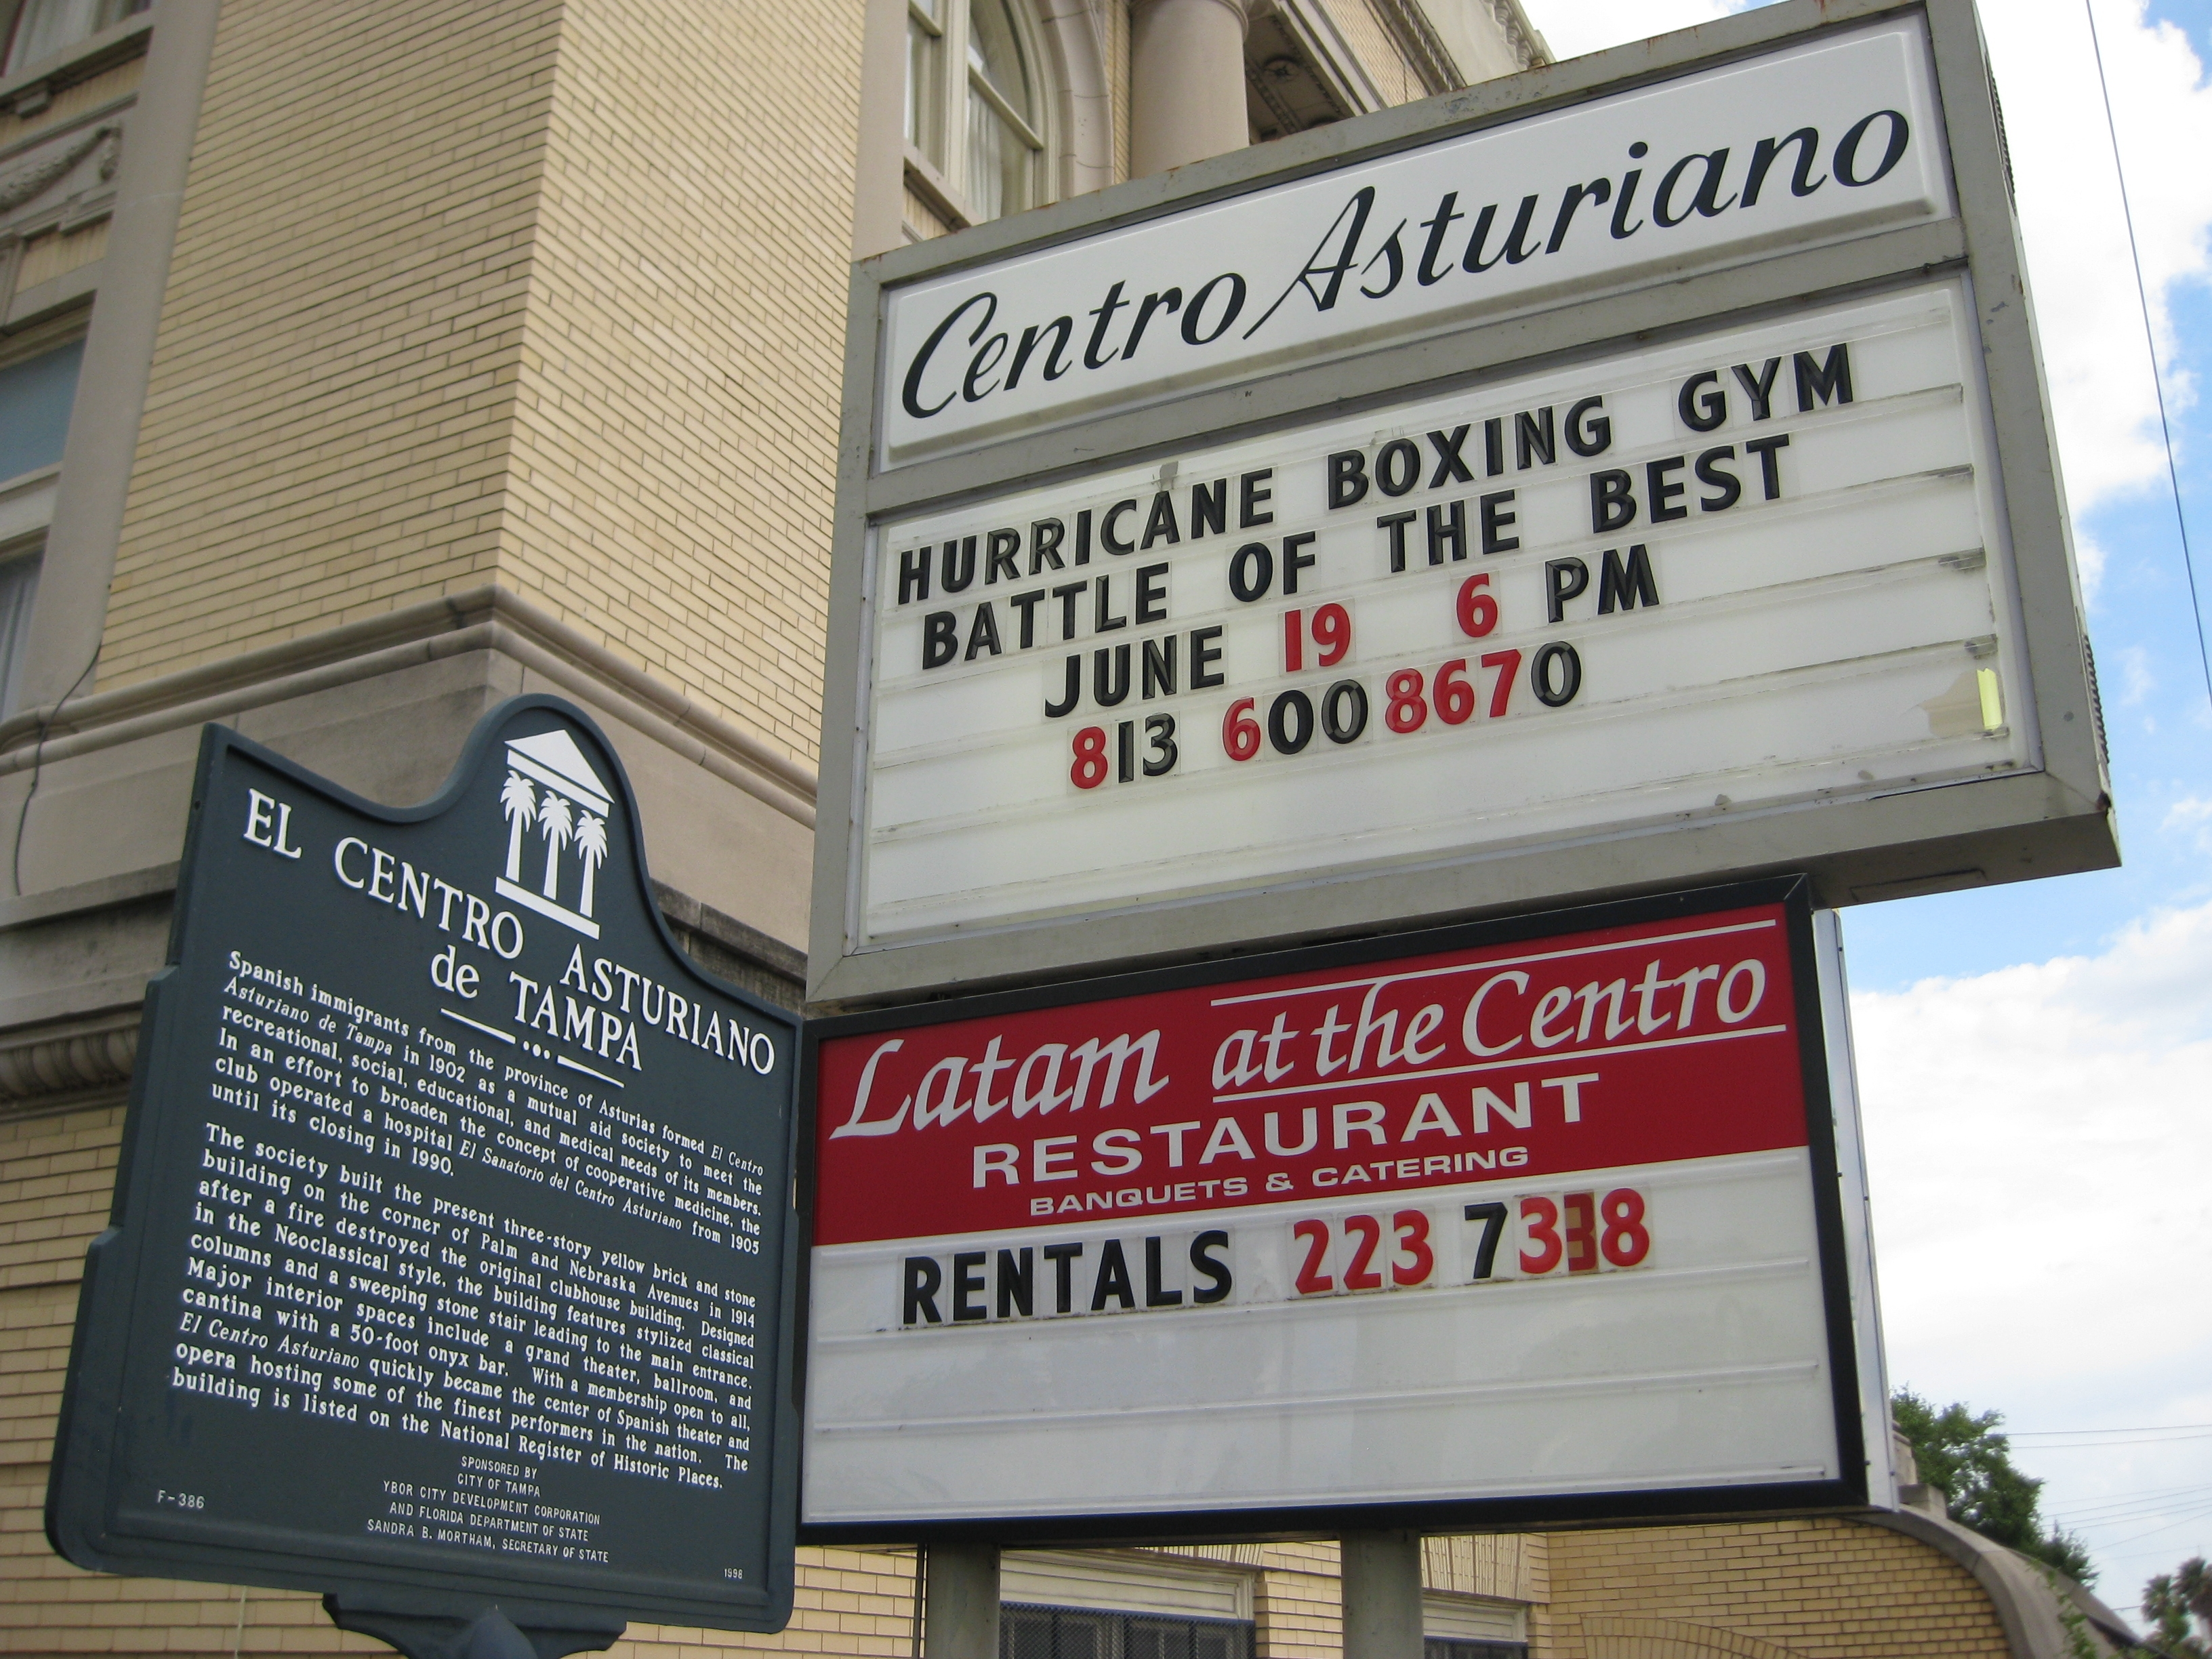 Centro Asturiano Signs and Historical Marker